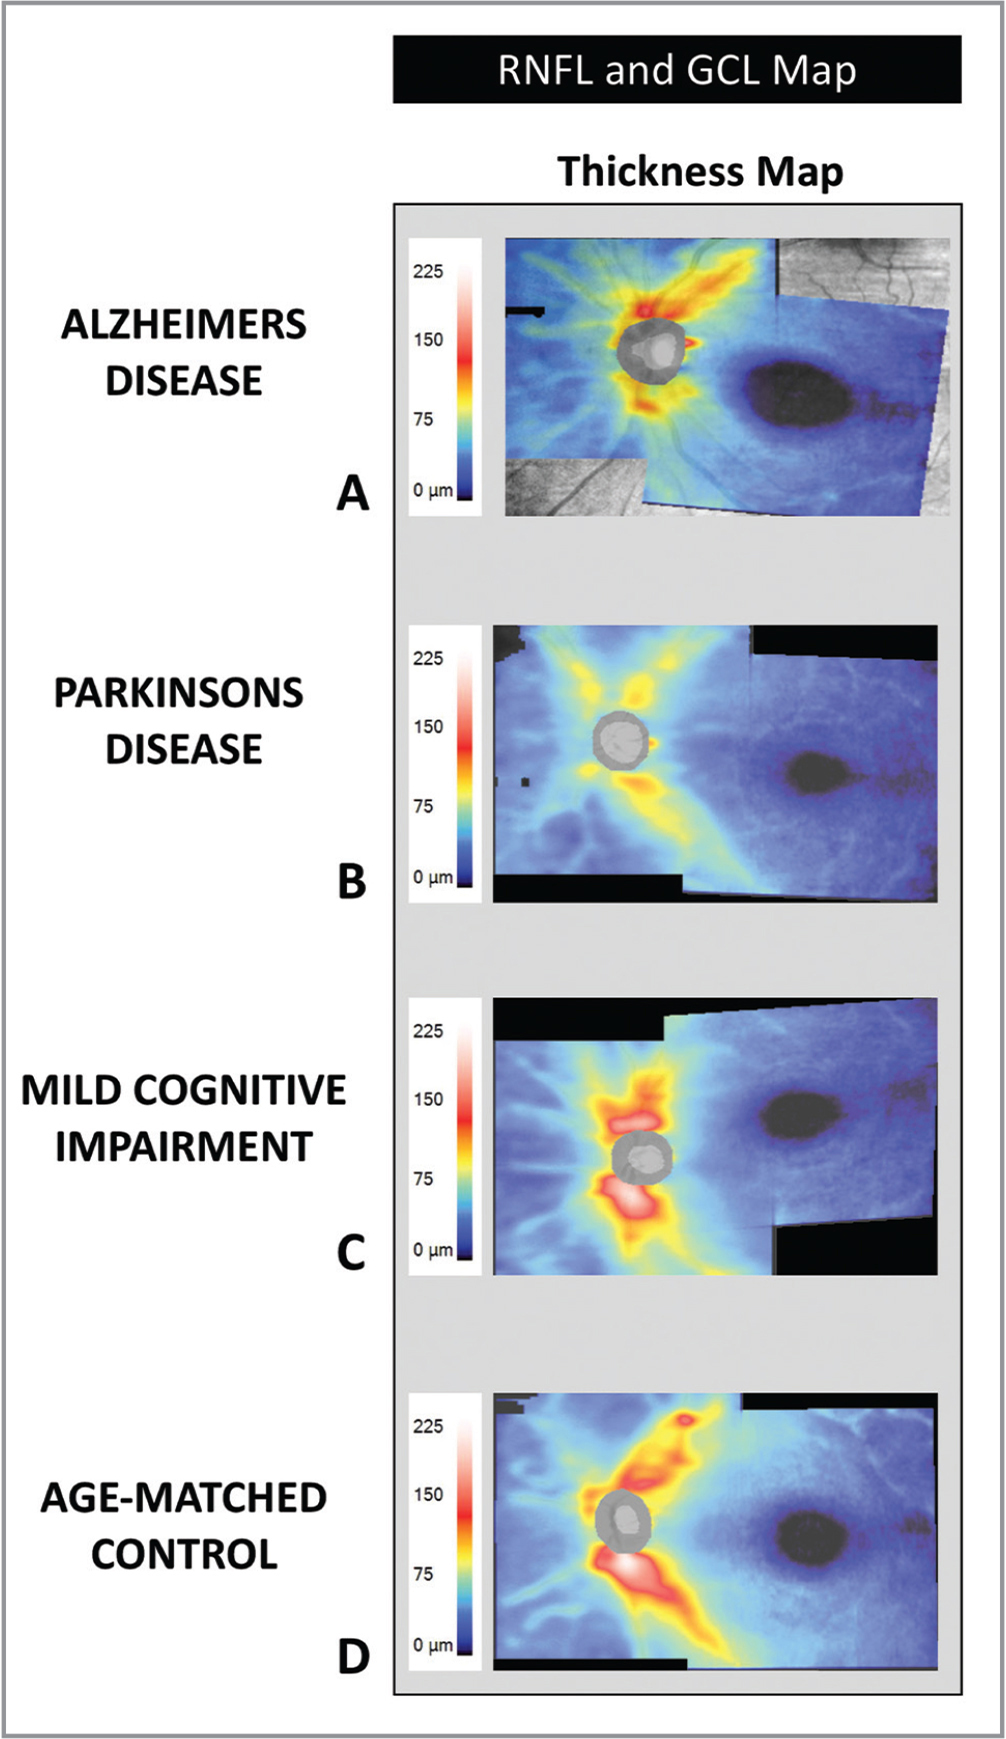 Combined color-coded retinal nerve fiber layer and ganglion cell layer thickness maps (with scale on left) in Alzheimer's disease (AD) (A), Parkinson's disease (PD) (B), mild cognitive impairment (MCI) (C), and an age-matched control (D) showing retinal nerve fiber layer and ganglion cell layer thinning to varying extents in AD, PD, and MCI compared to an age-matched control subject.